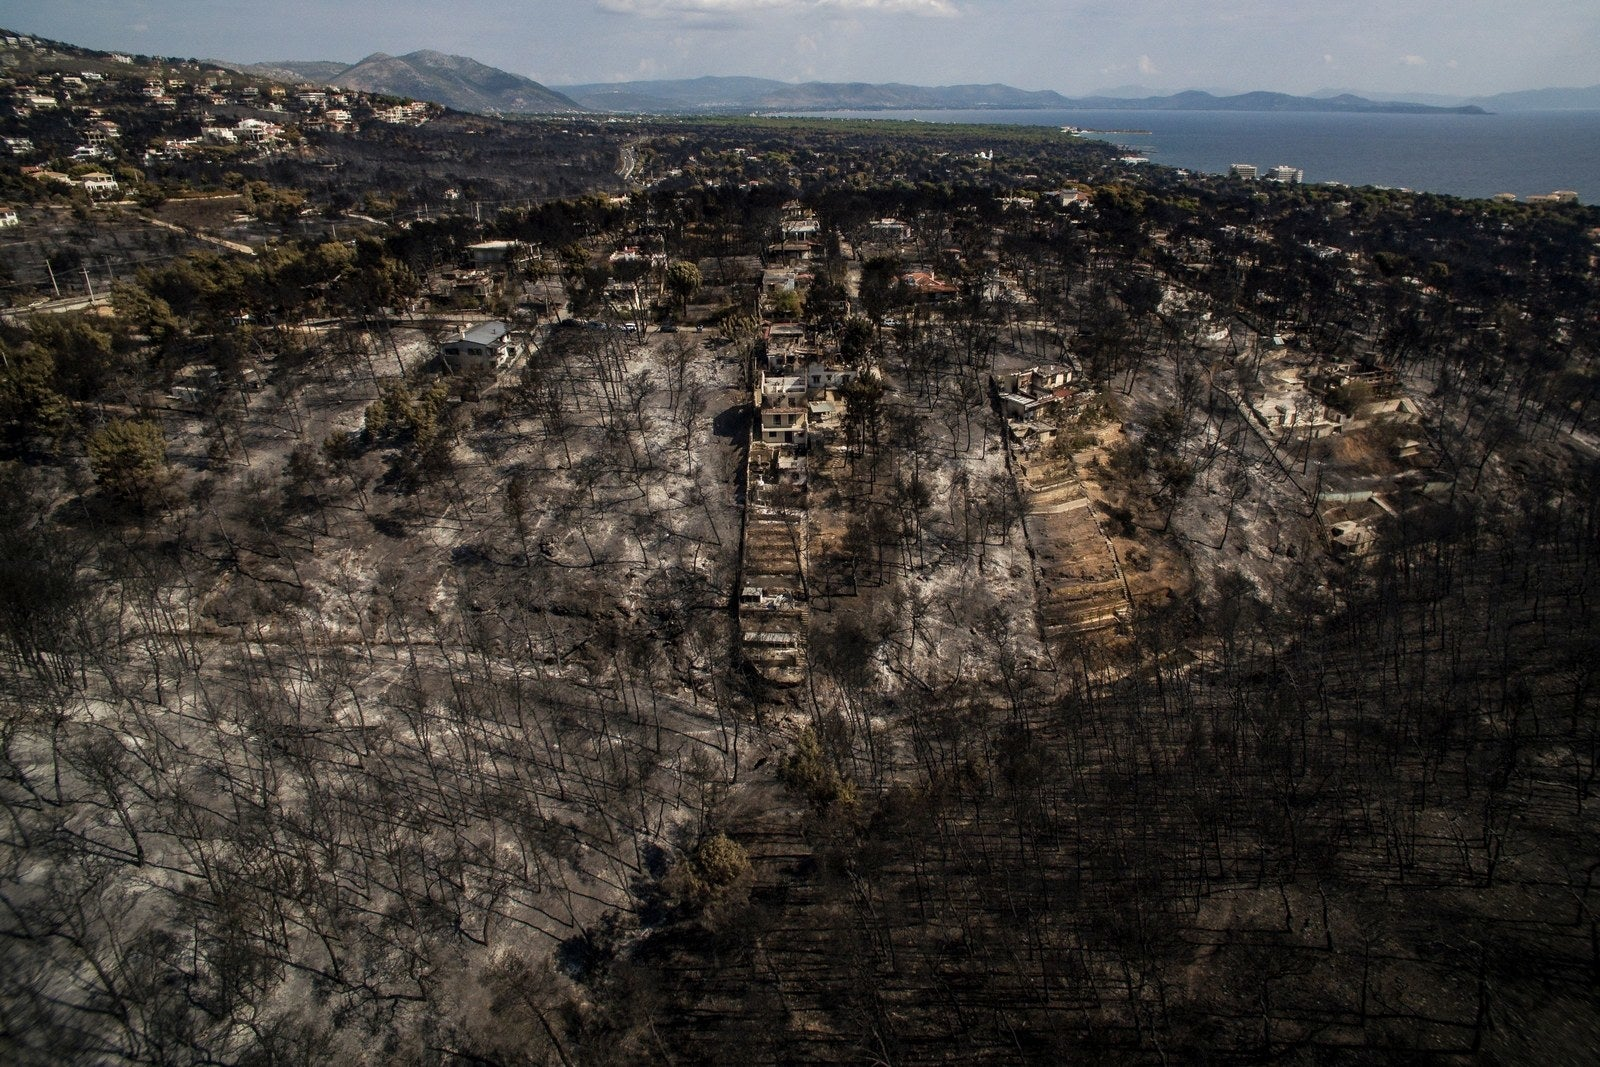 A scorched area following a wildfire in the Greek village of Mati, July 26.